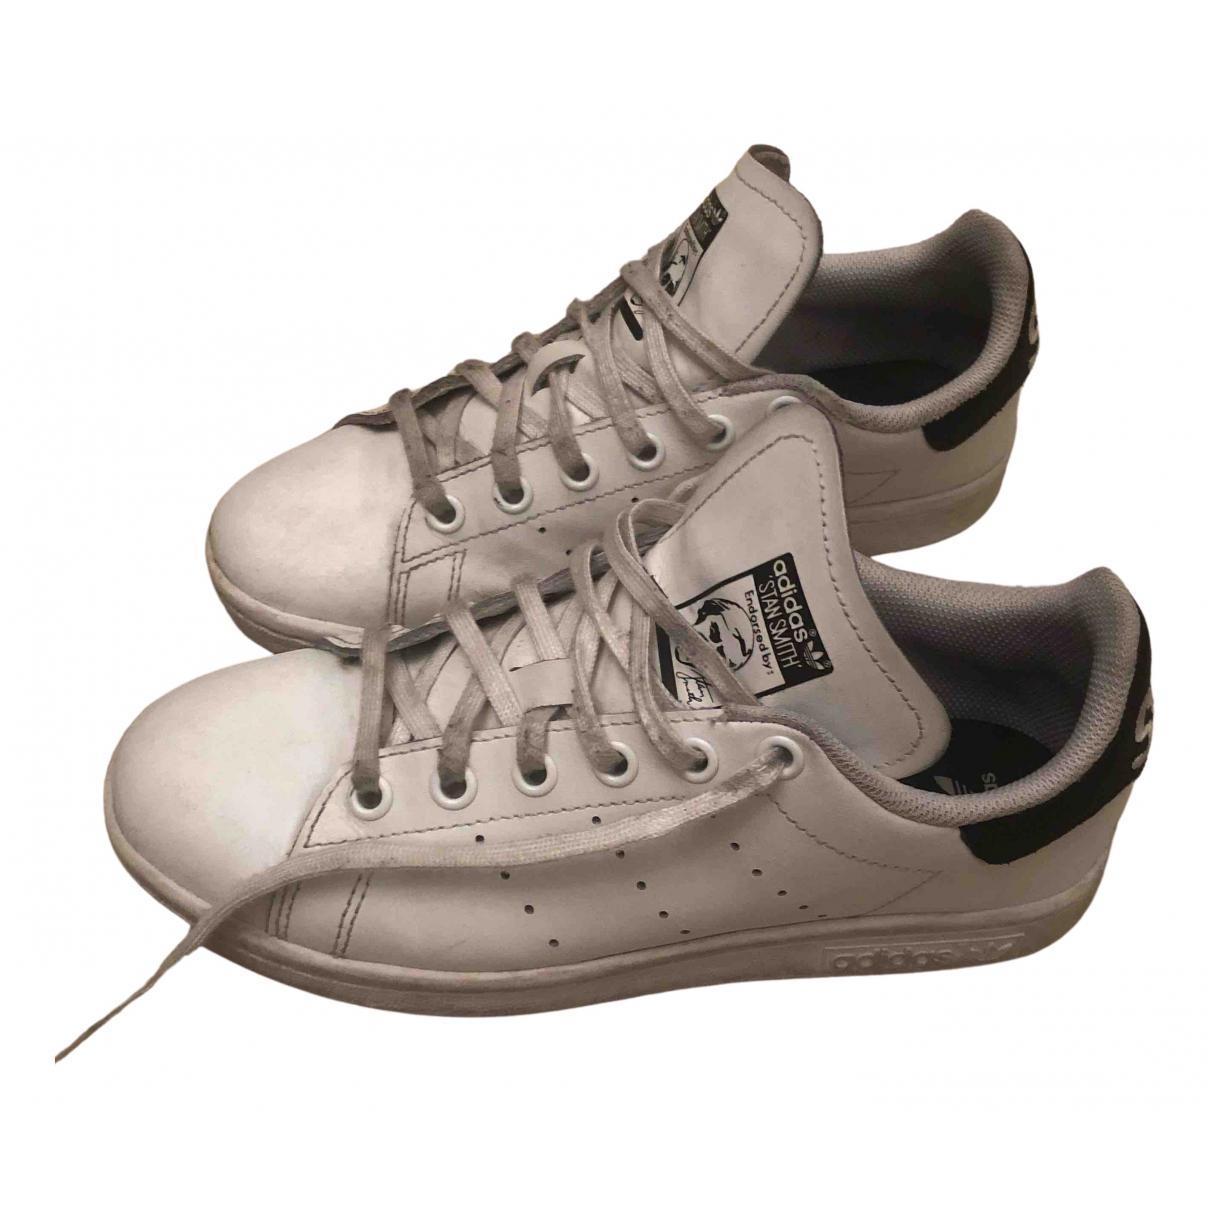 Adidas Stan Smith White Leather Trainers for Women 36 EU